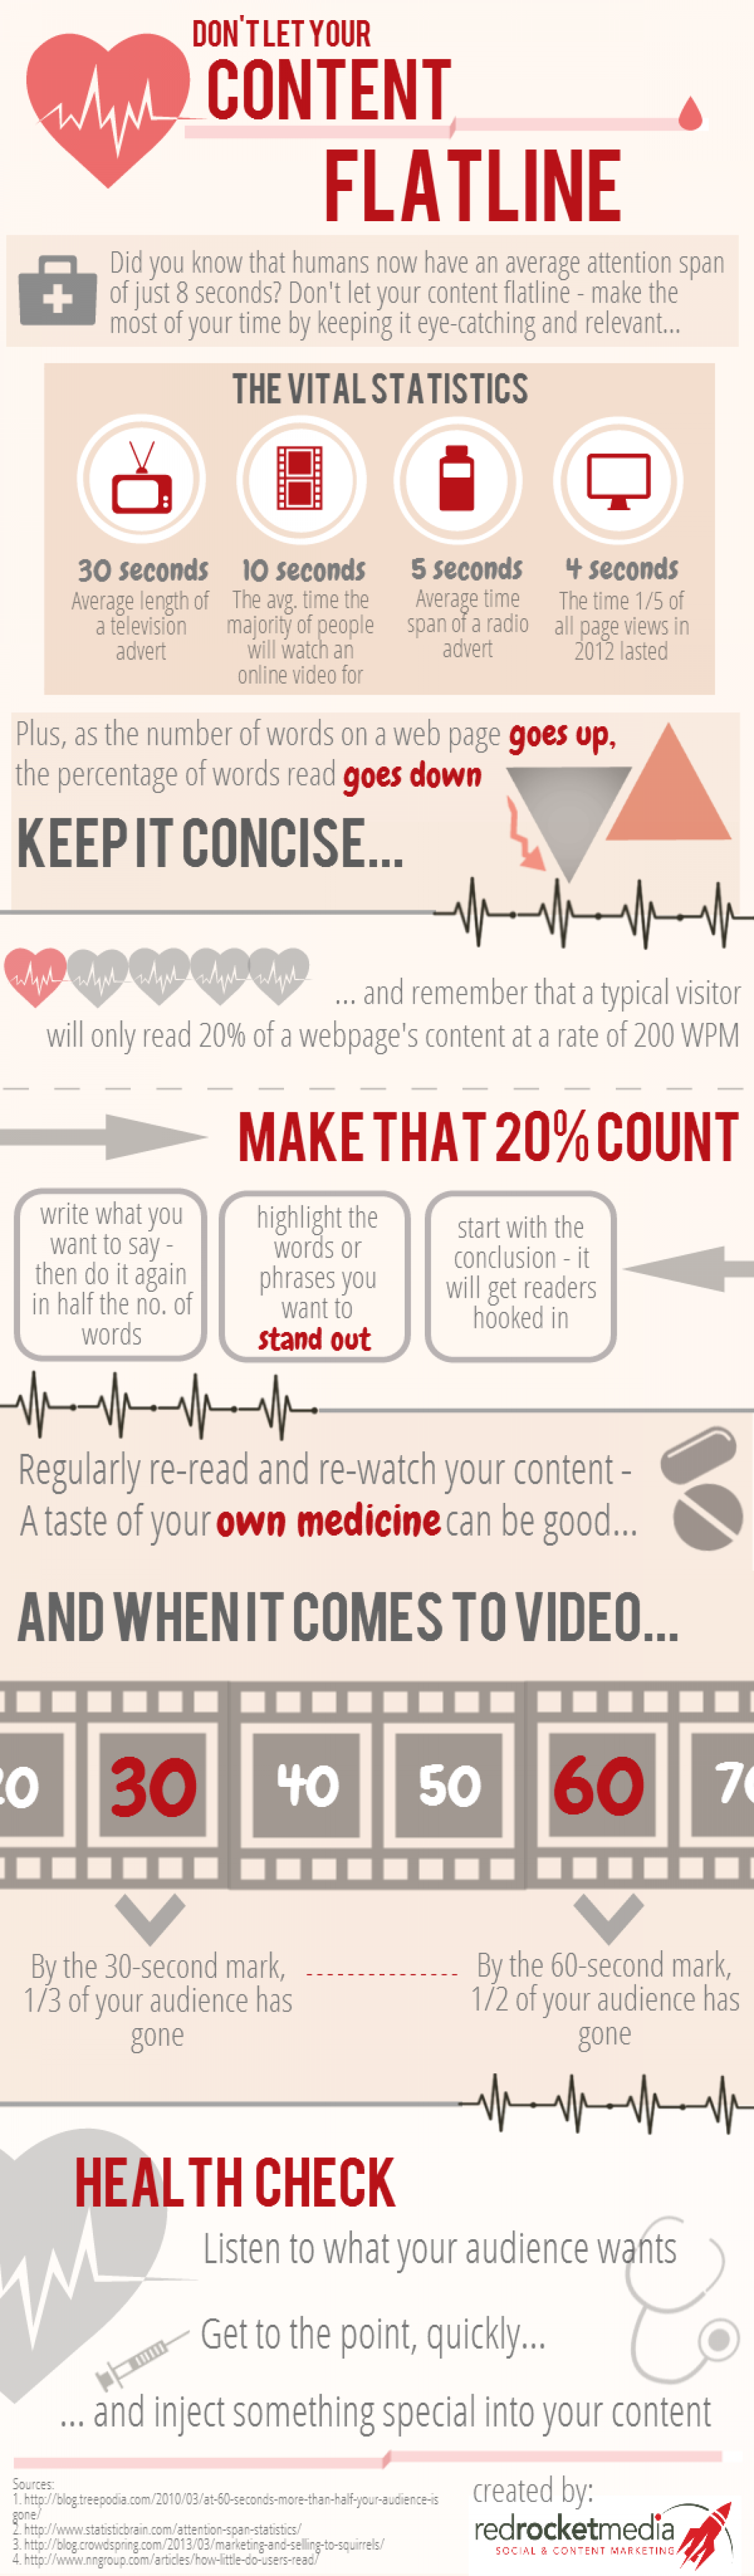 Emergency! Don't Let Your Content Flatline Infographic